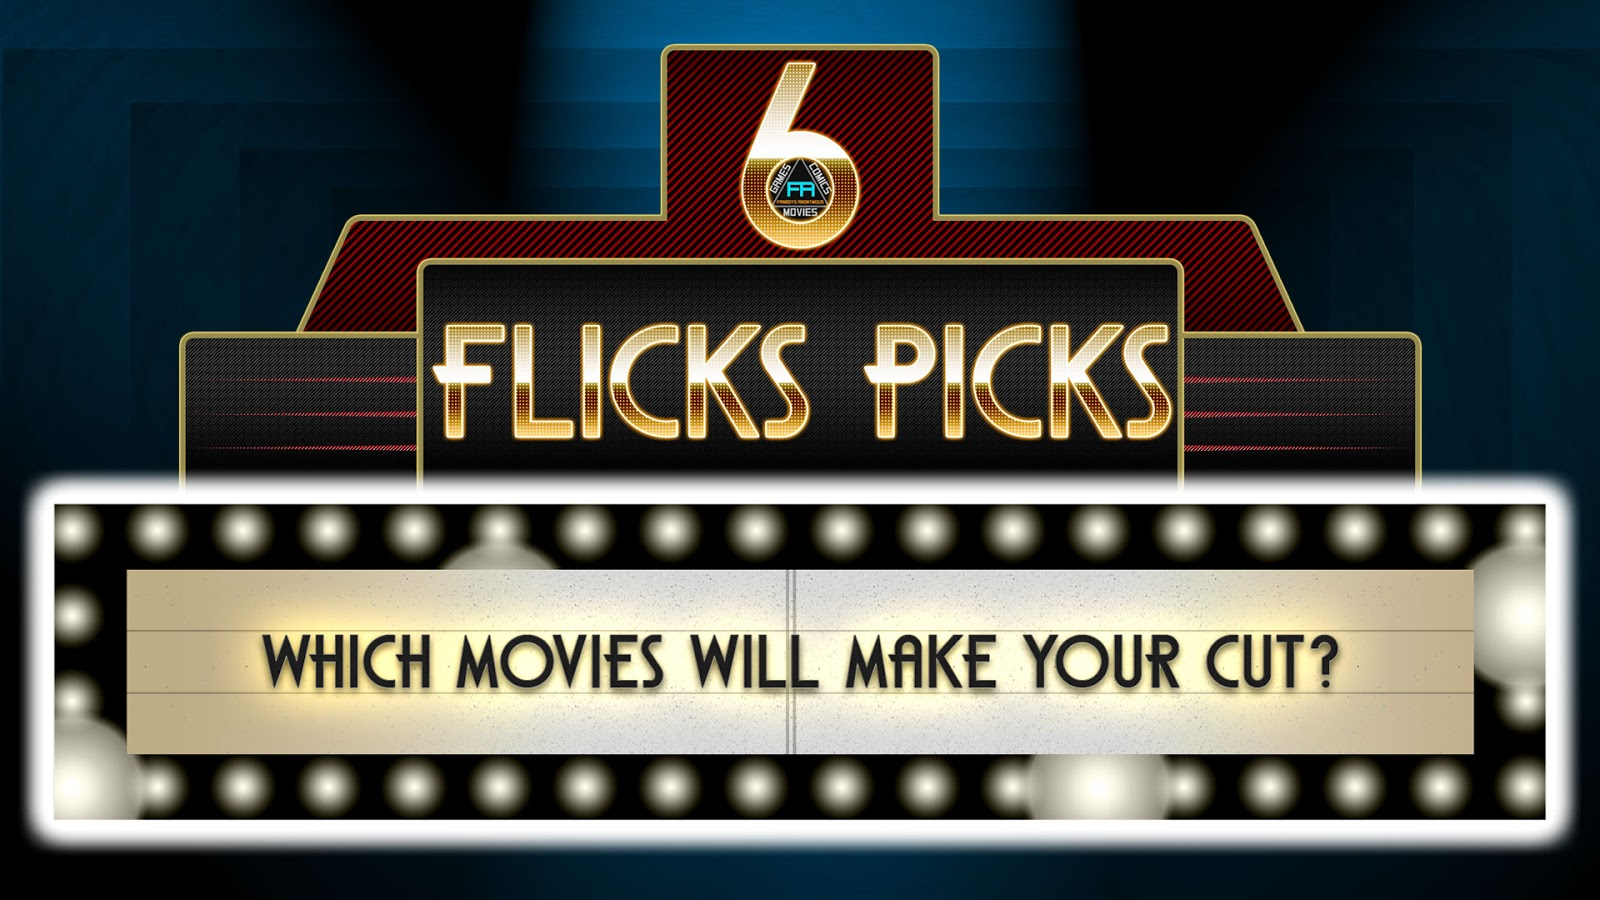 What movies are coming out May 2018 6 Flicks Picks